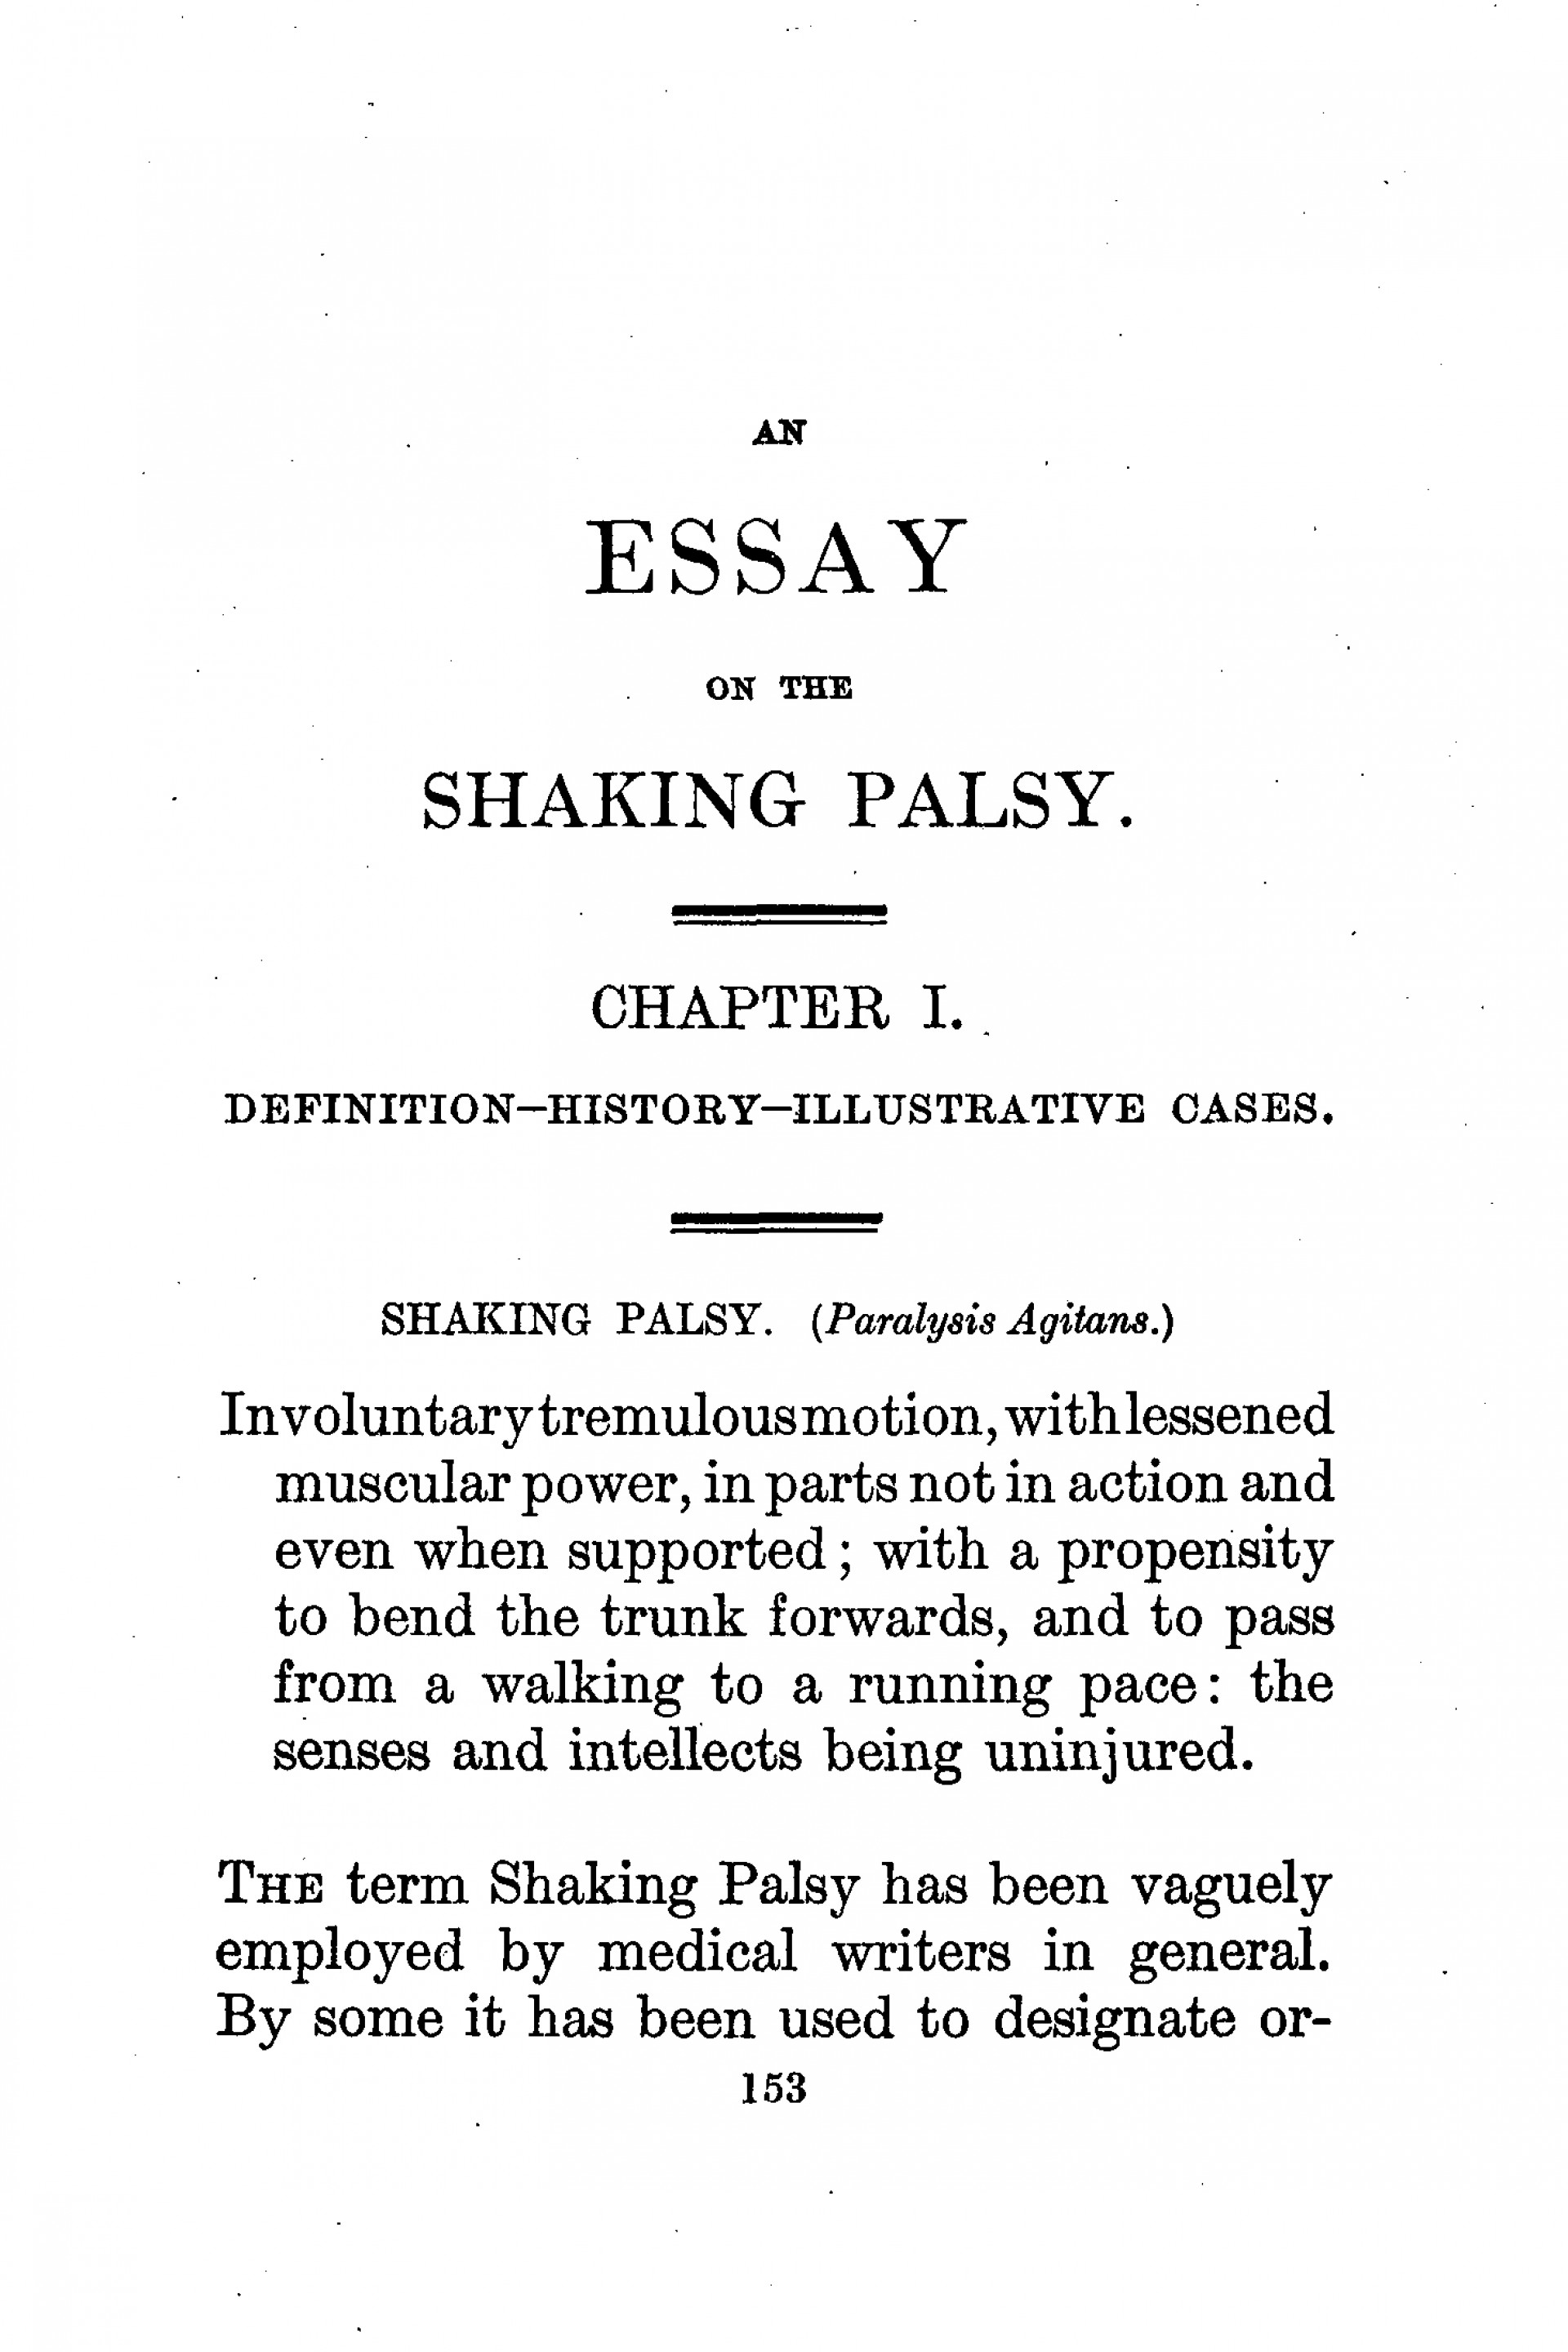 003 First Essay Parkinson2c An On The Shaking Palsy 28first Page29 Rare Day At University Nietzsche Week 1920